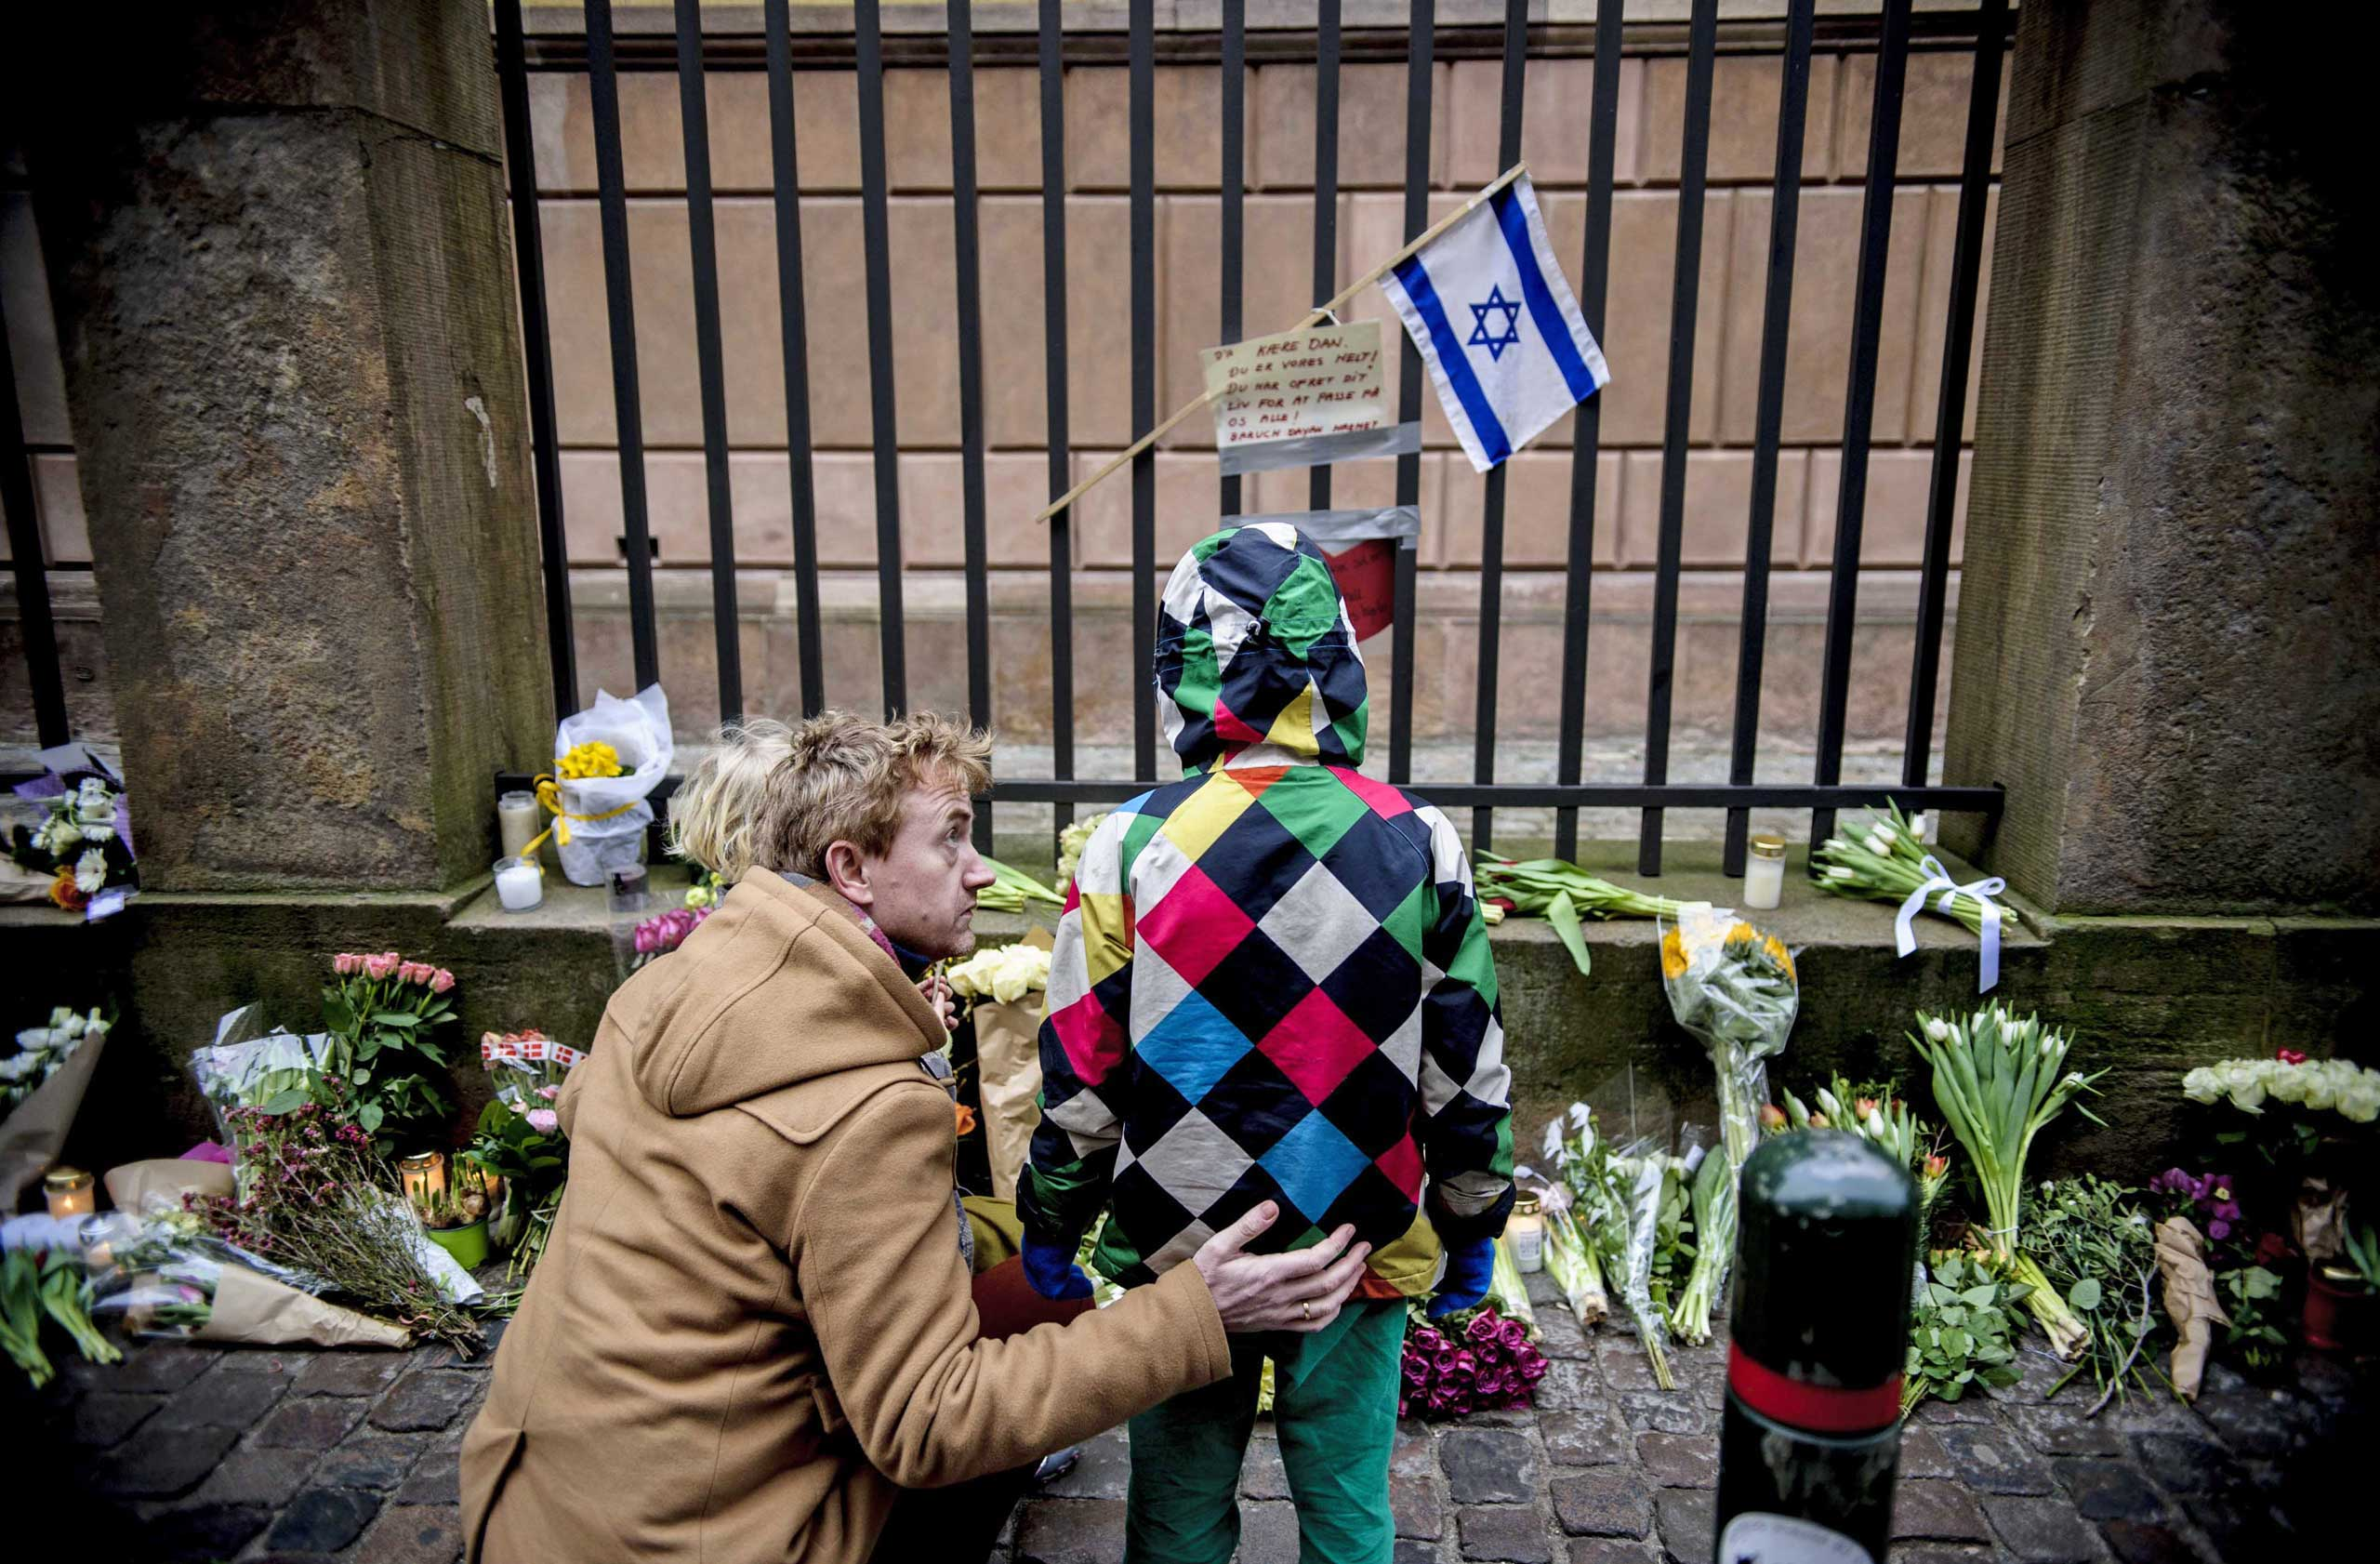 People look at flowers placed outside a synagogue where an attack took place in Copenhagen, Feb. 15, 2015.